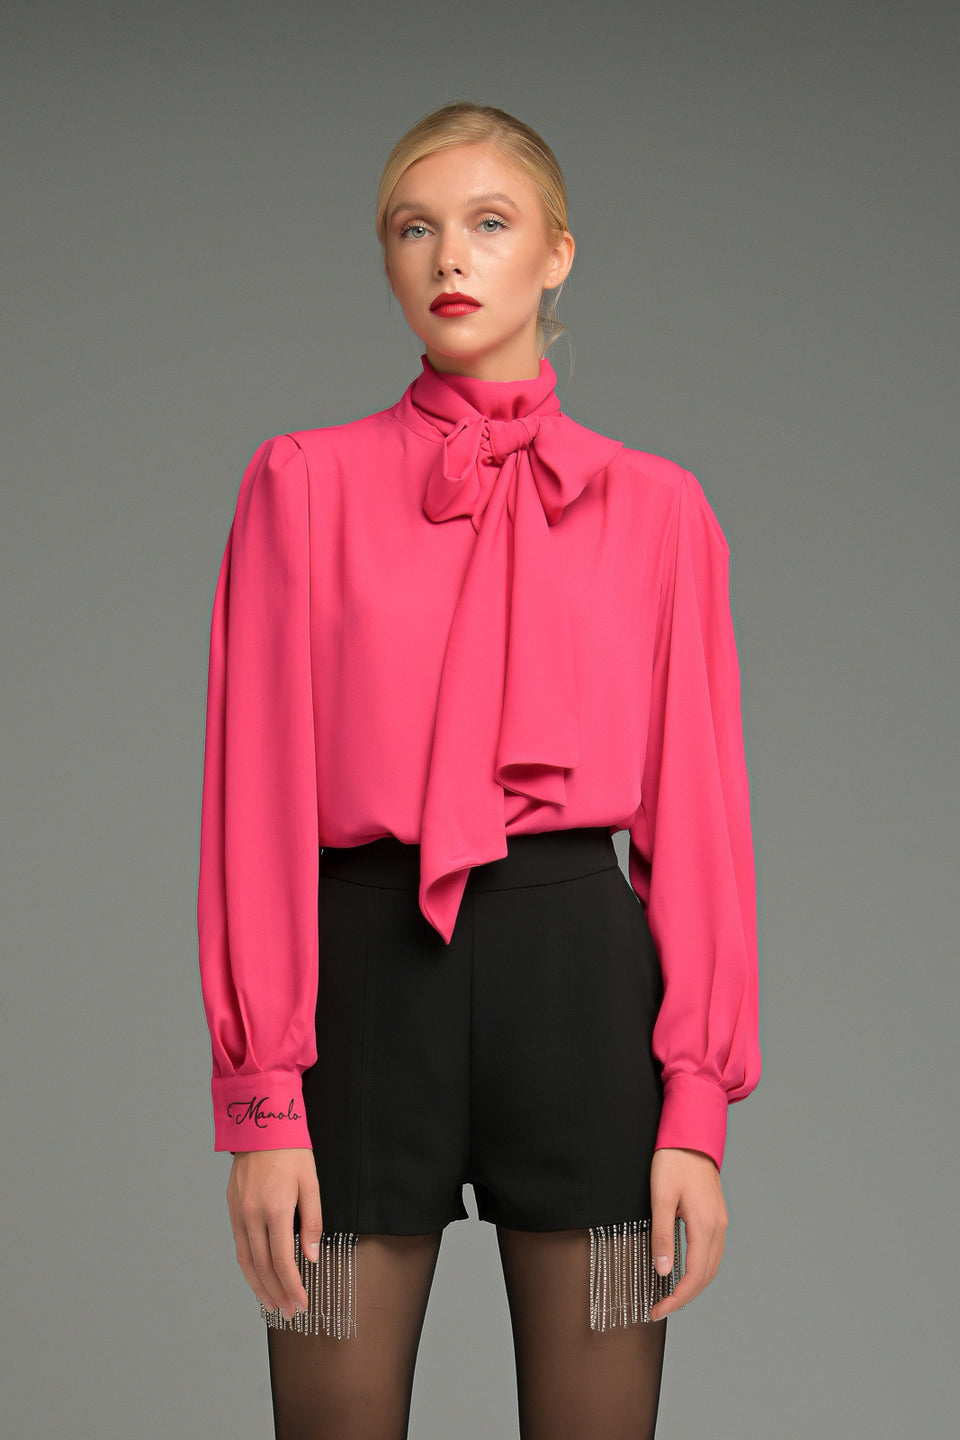 PUFF SLEEVES SHIRT WITH TIE NECK PUFF SLEEVES SHIRT WITH TIE NECK